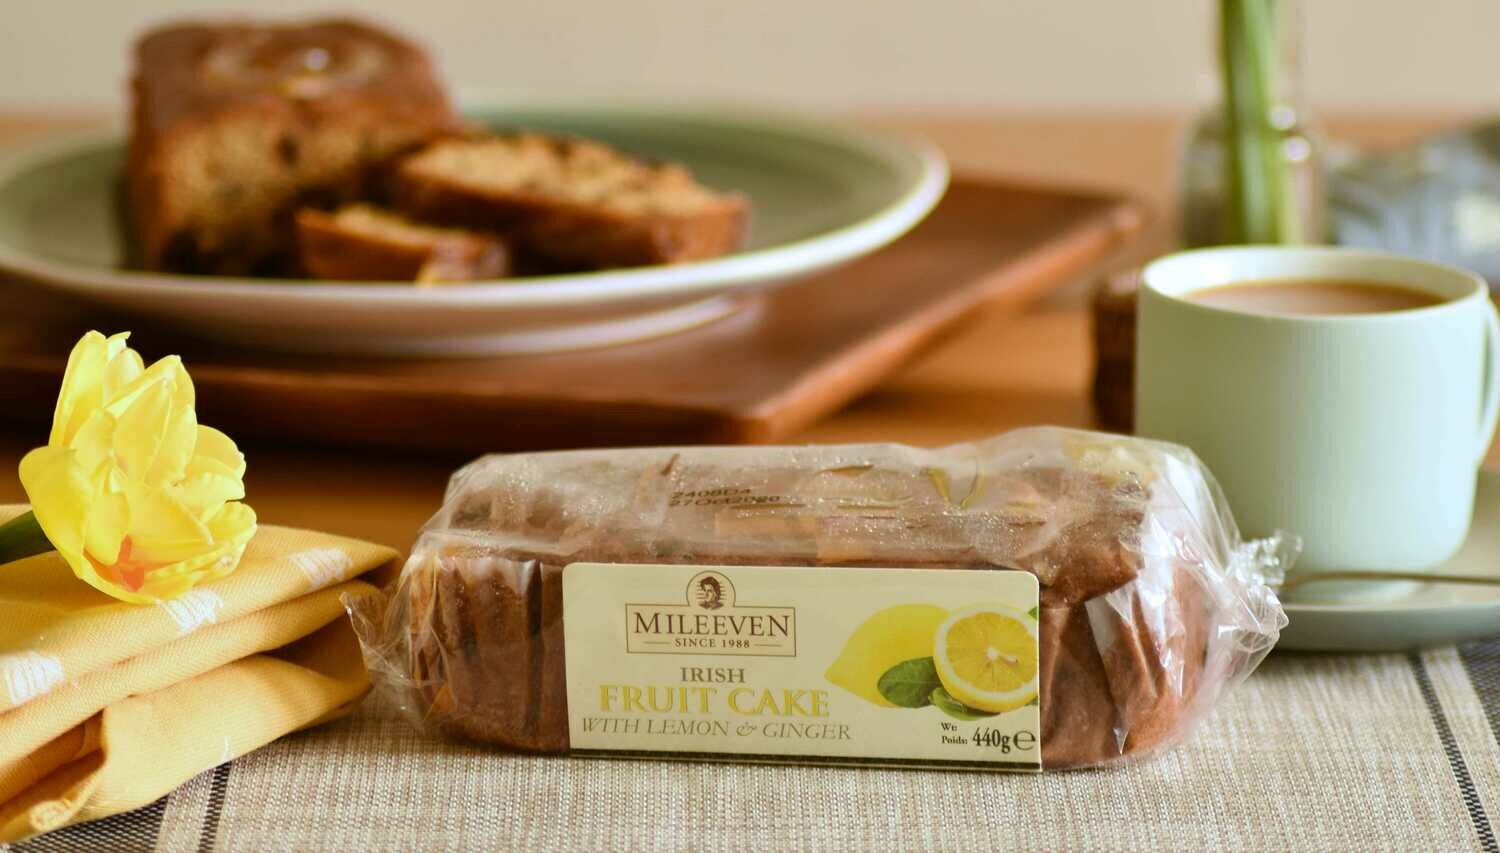 Exclusive to the Online Shop! Mileeven Fruit Cake with Lemon & Ginger